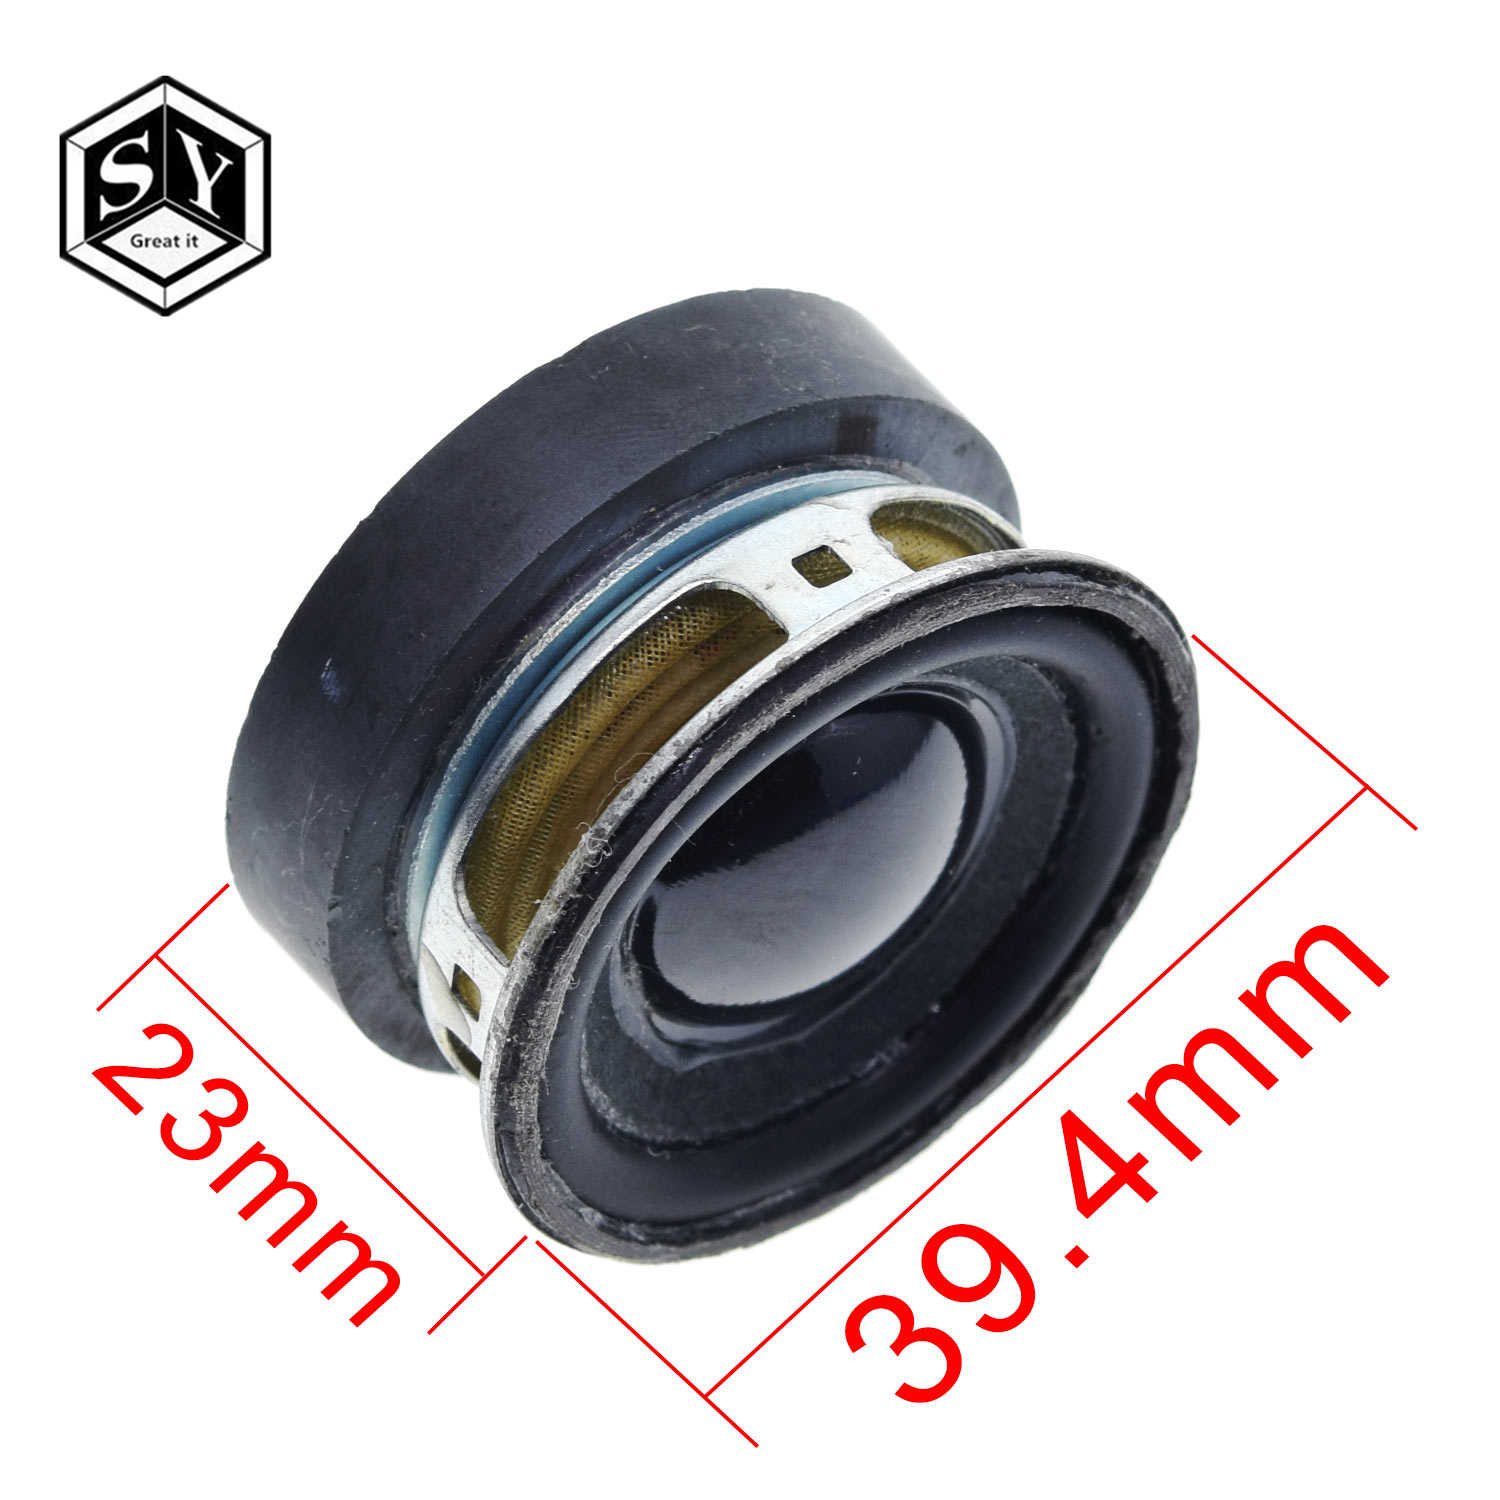 1 Pcs Akustik Pengeras Suara 4R 3W 40 Mm Speaker 36 Mm Magnet Eksternal Topi Hitam PU Edge